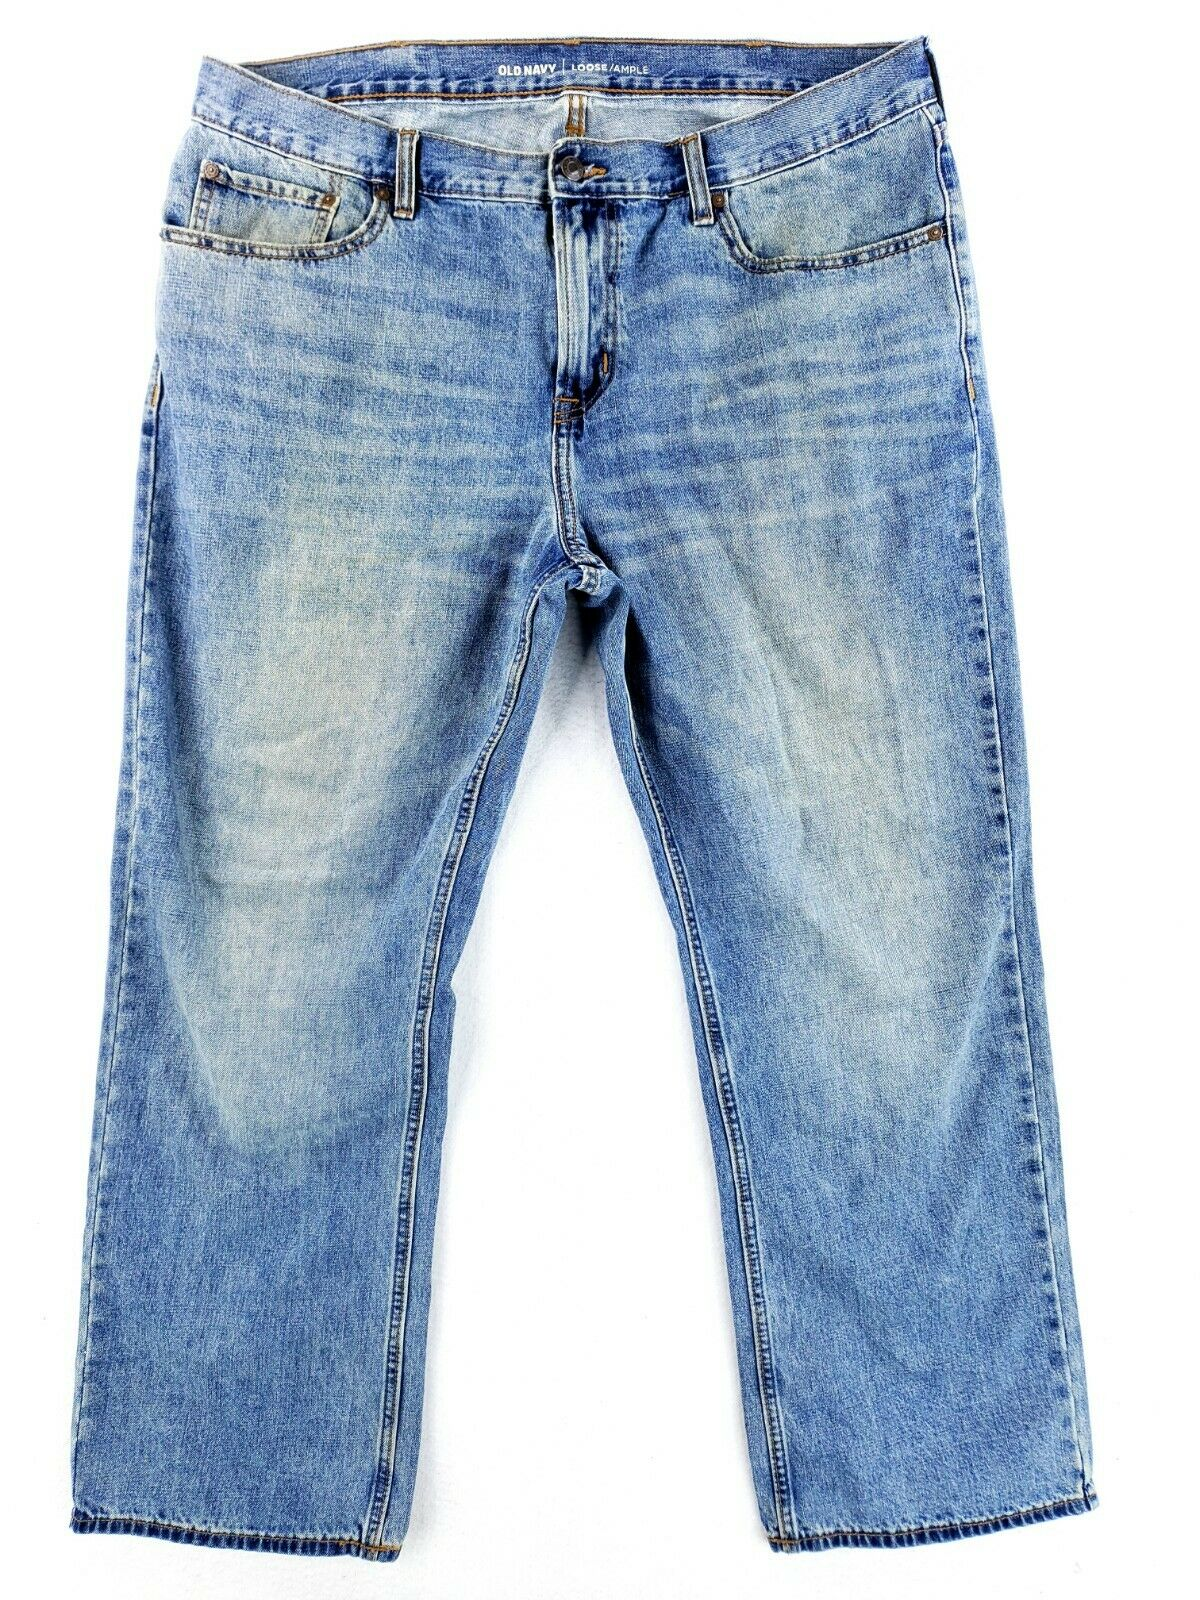 """Coach Flick size 40"""" jeans he wore after gaining a bunch of weight."""